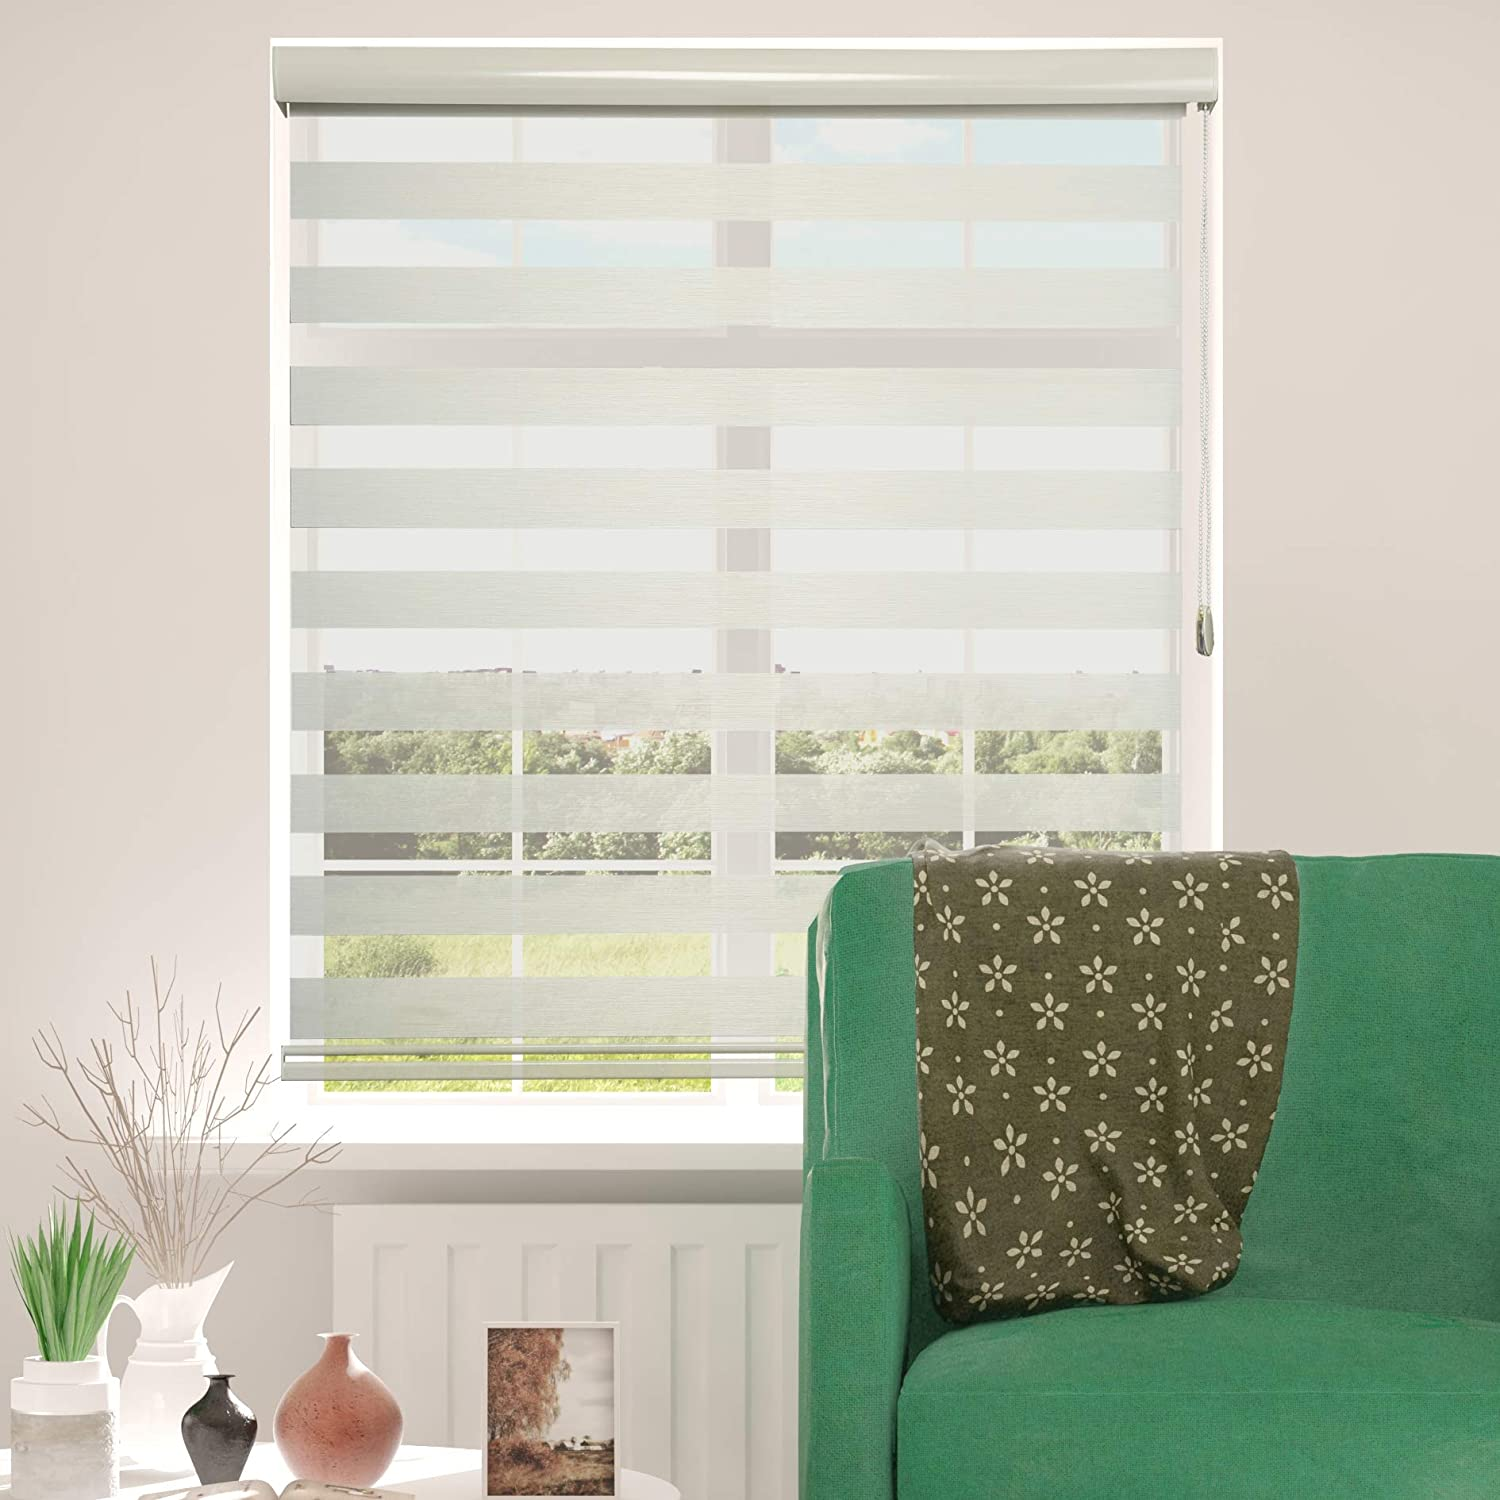 ShadesU Cream Color Zebra Dual Layer Roller Sheer Shades Blinds Light Filtering Window Treatments Privacy Light Control for Day and Night (Maxium Height 72inch) (21 inch Width)